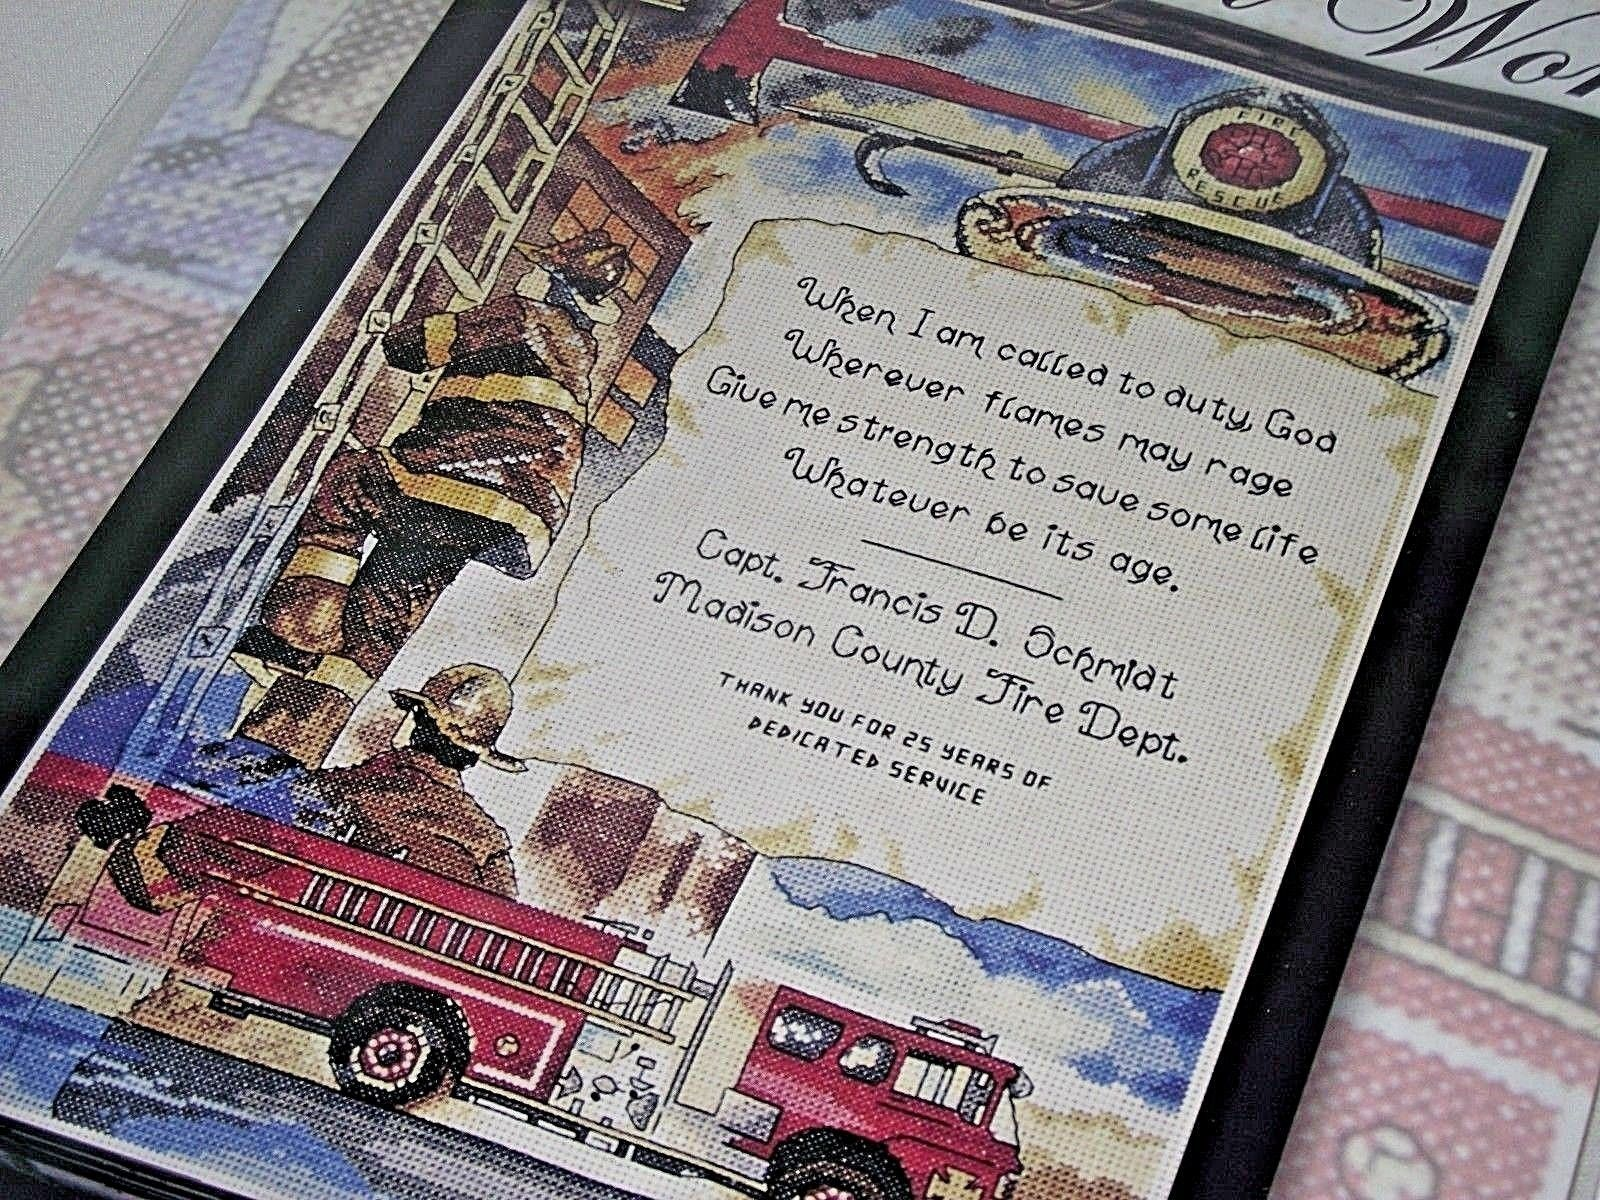 Fireman Fire Department Cross Stitch Kit Call to Duty Recognition Honor Service